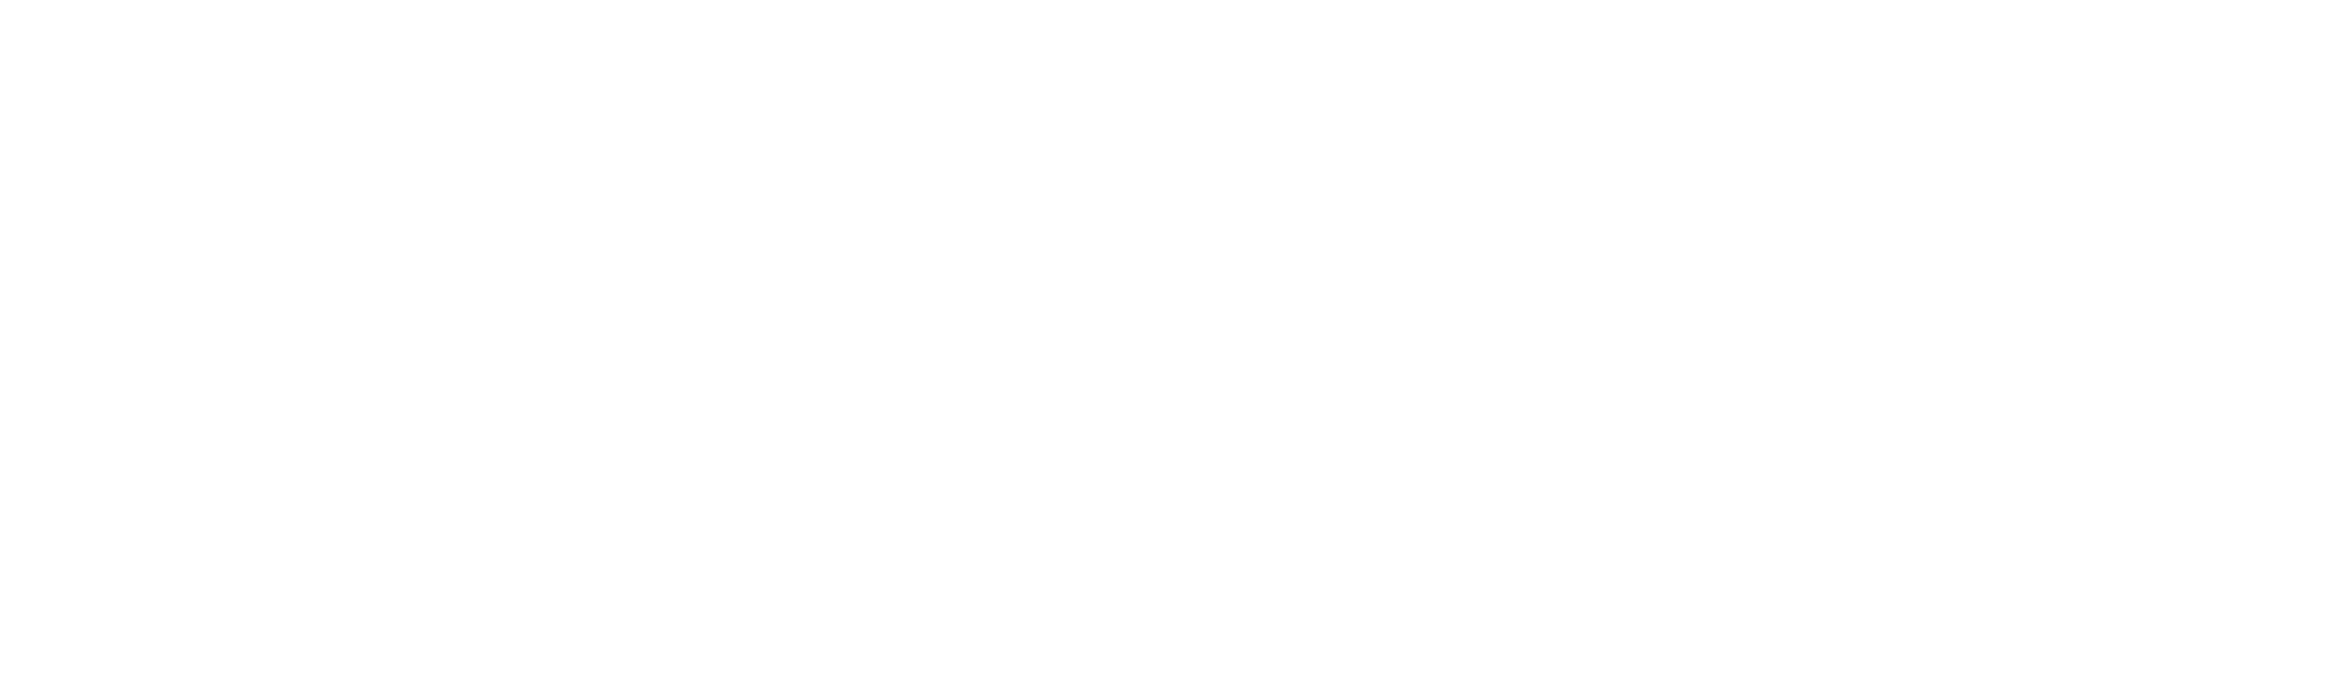 cost.png